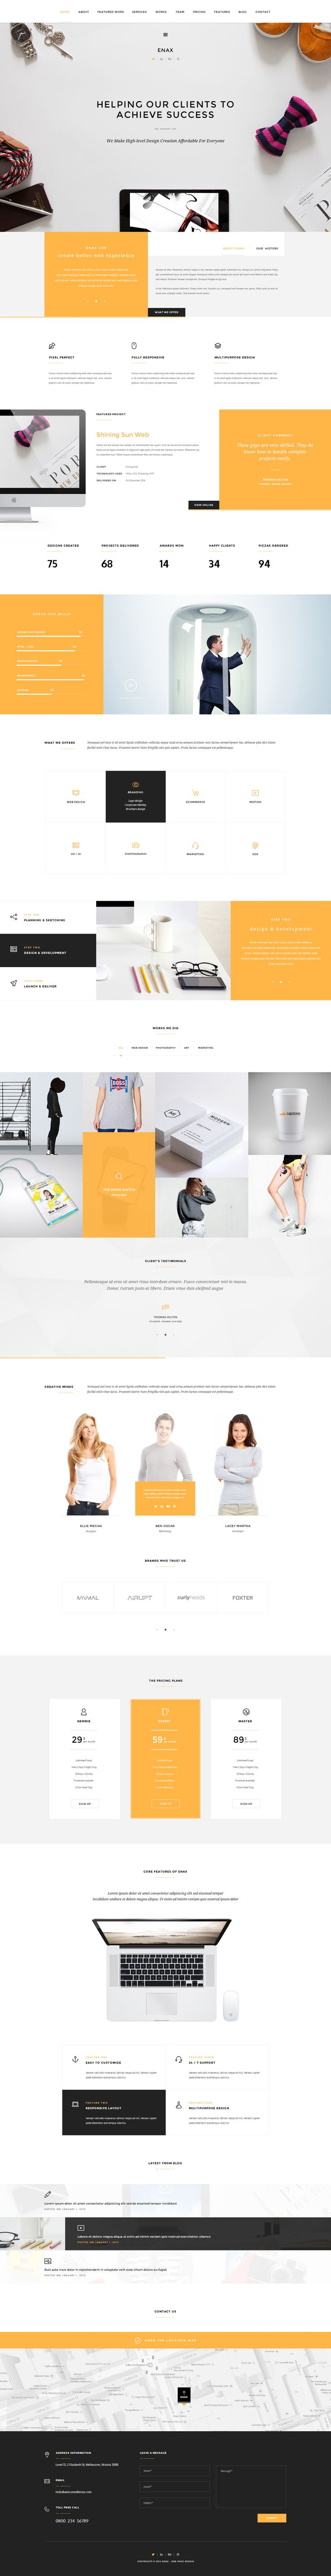 Enax - One Page Multipurpose Parallax by enFusionThemes